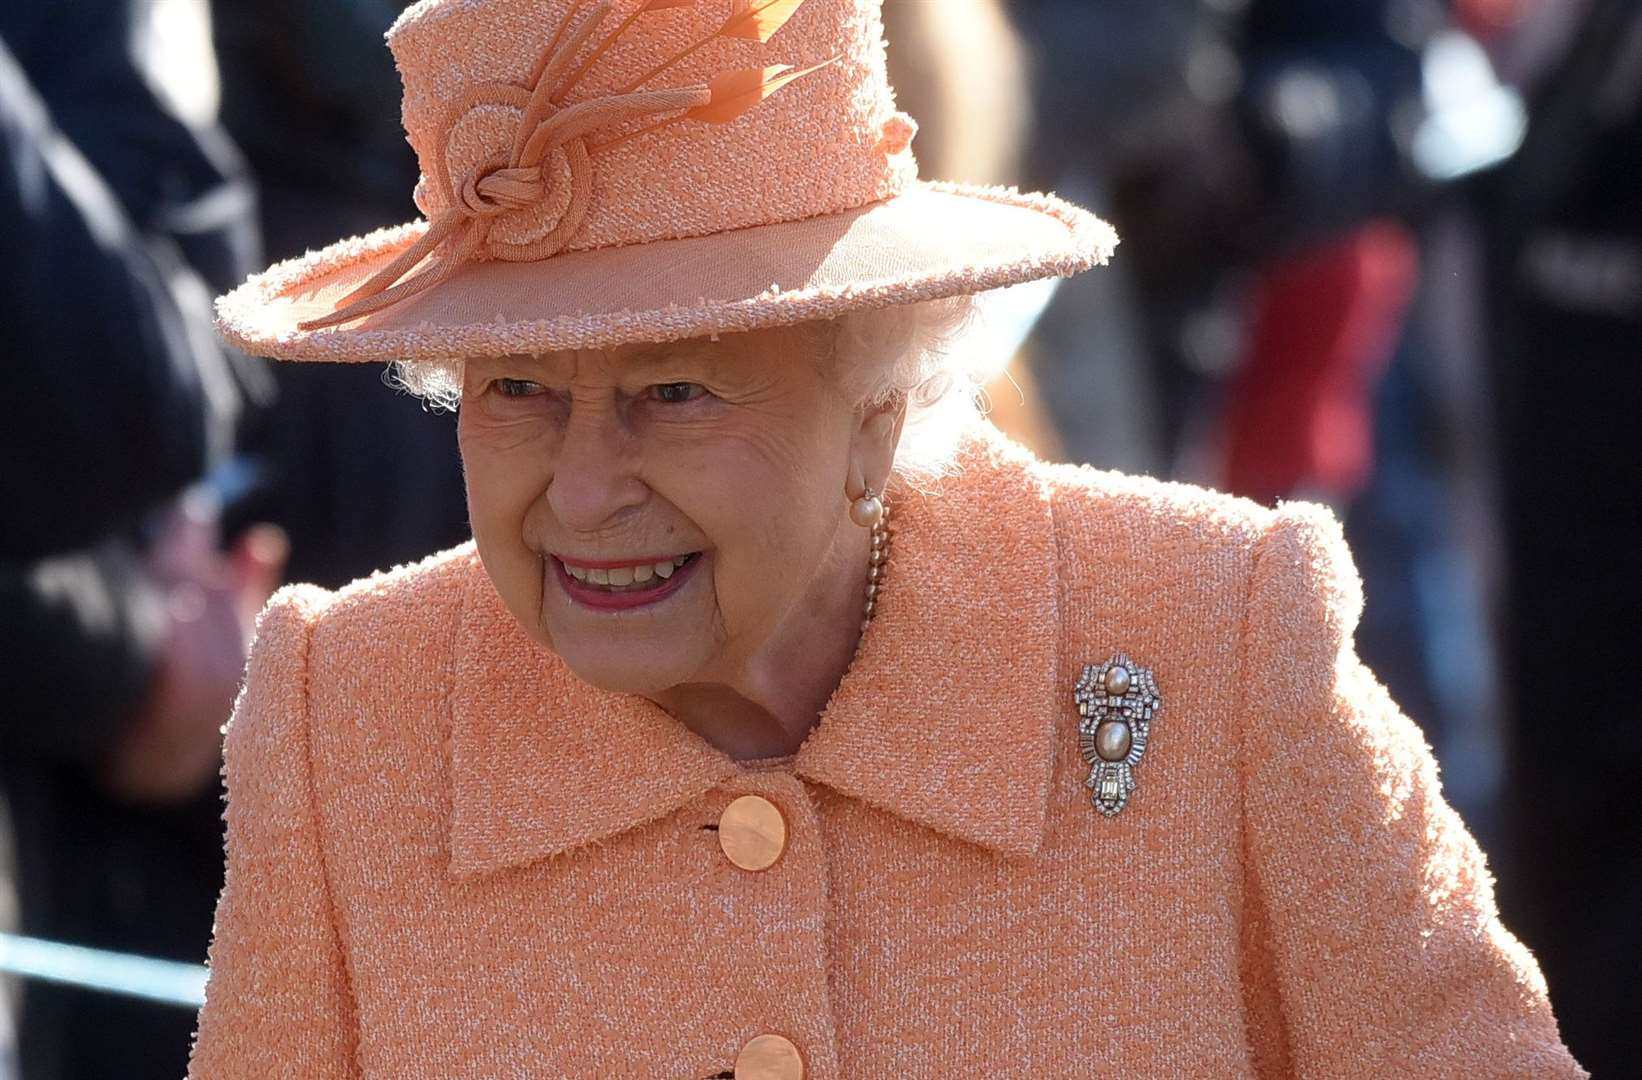 The Queen celebrates her 93rd birthday today